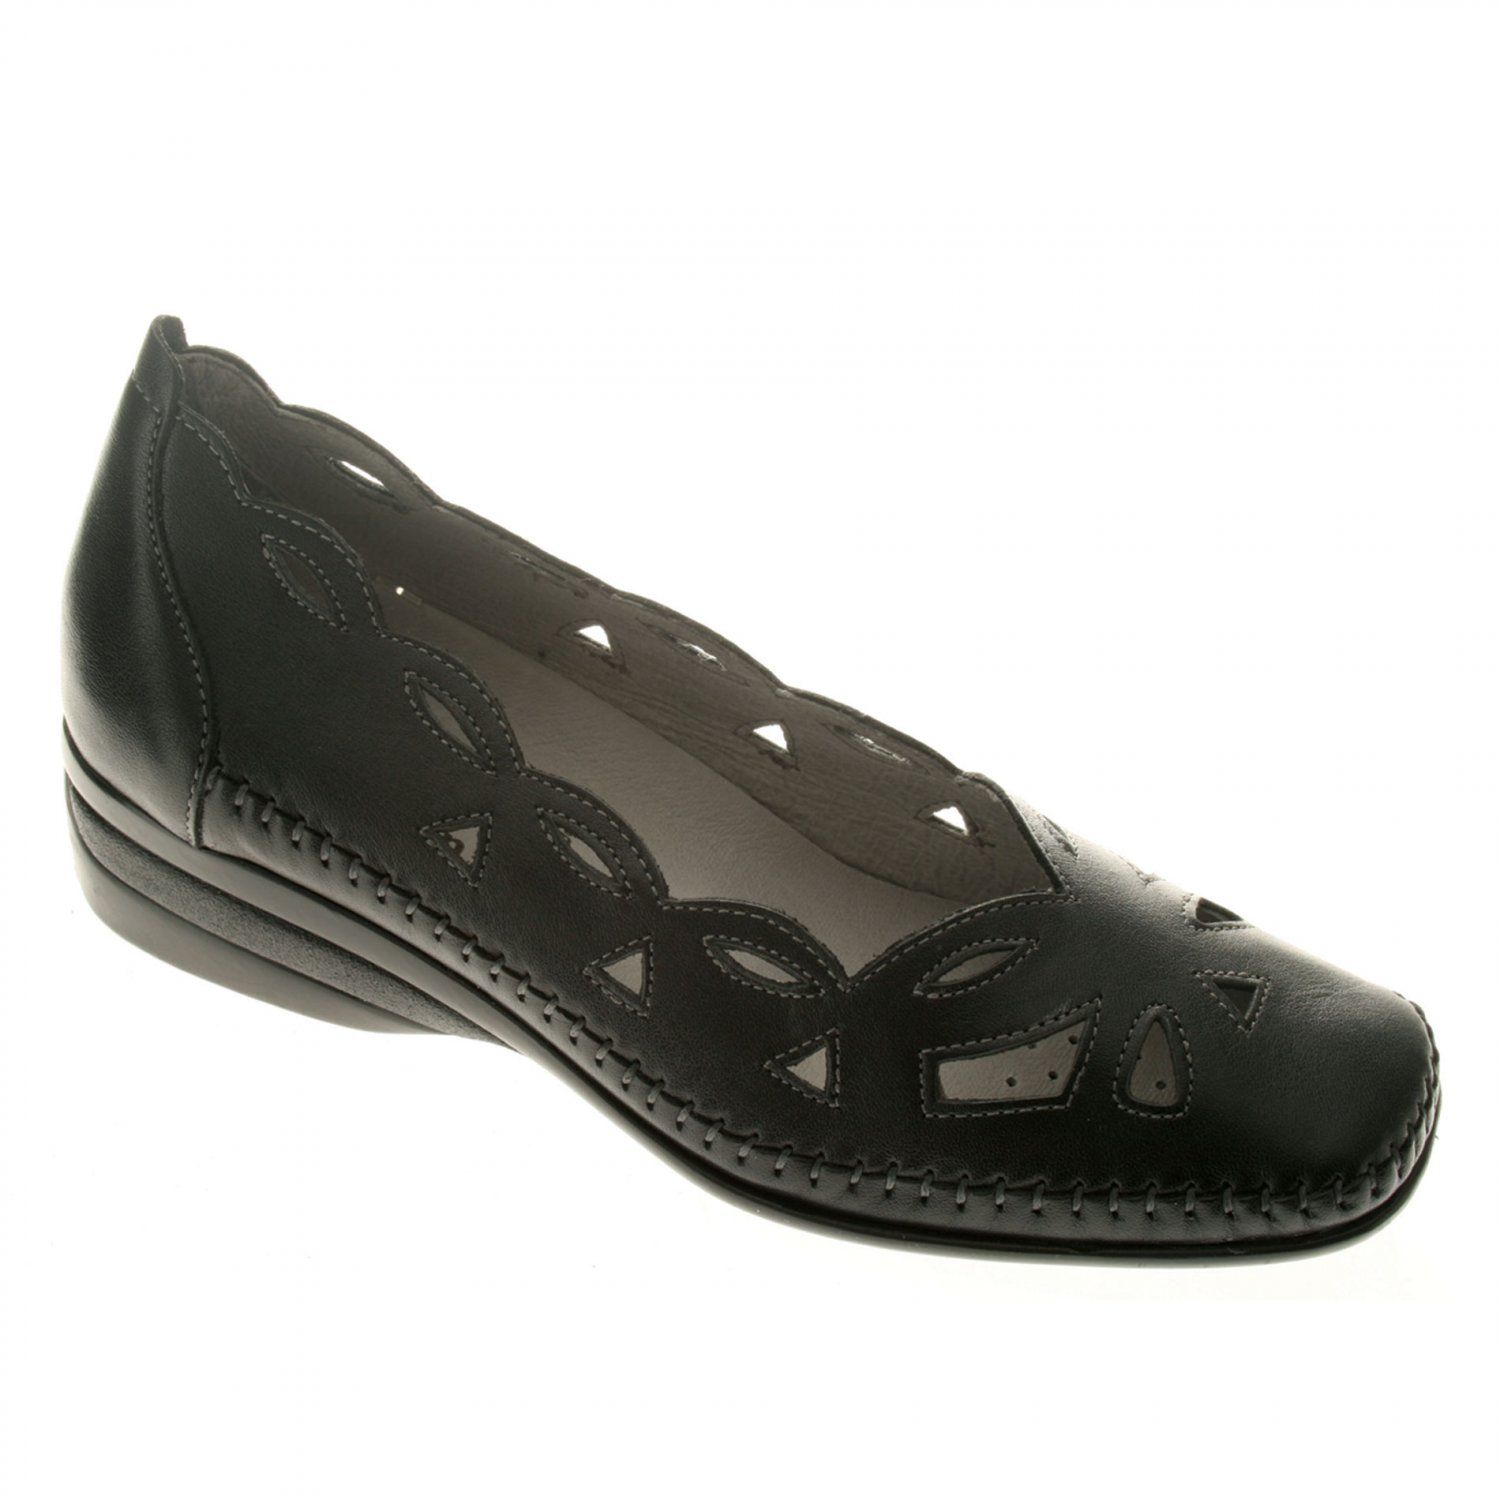 Spring Step ROXY Oxfords Shoes All Sizes & Colors $89.